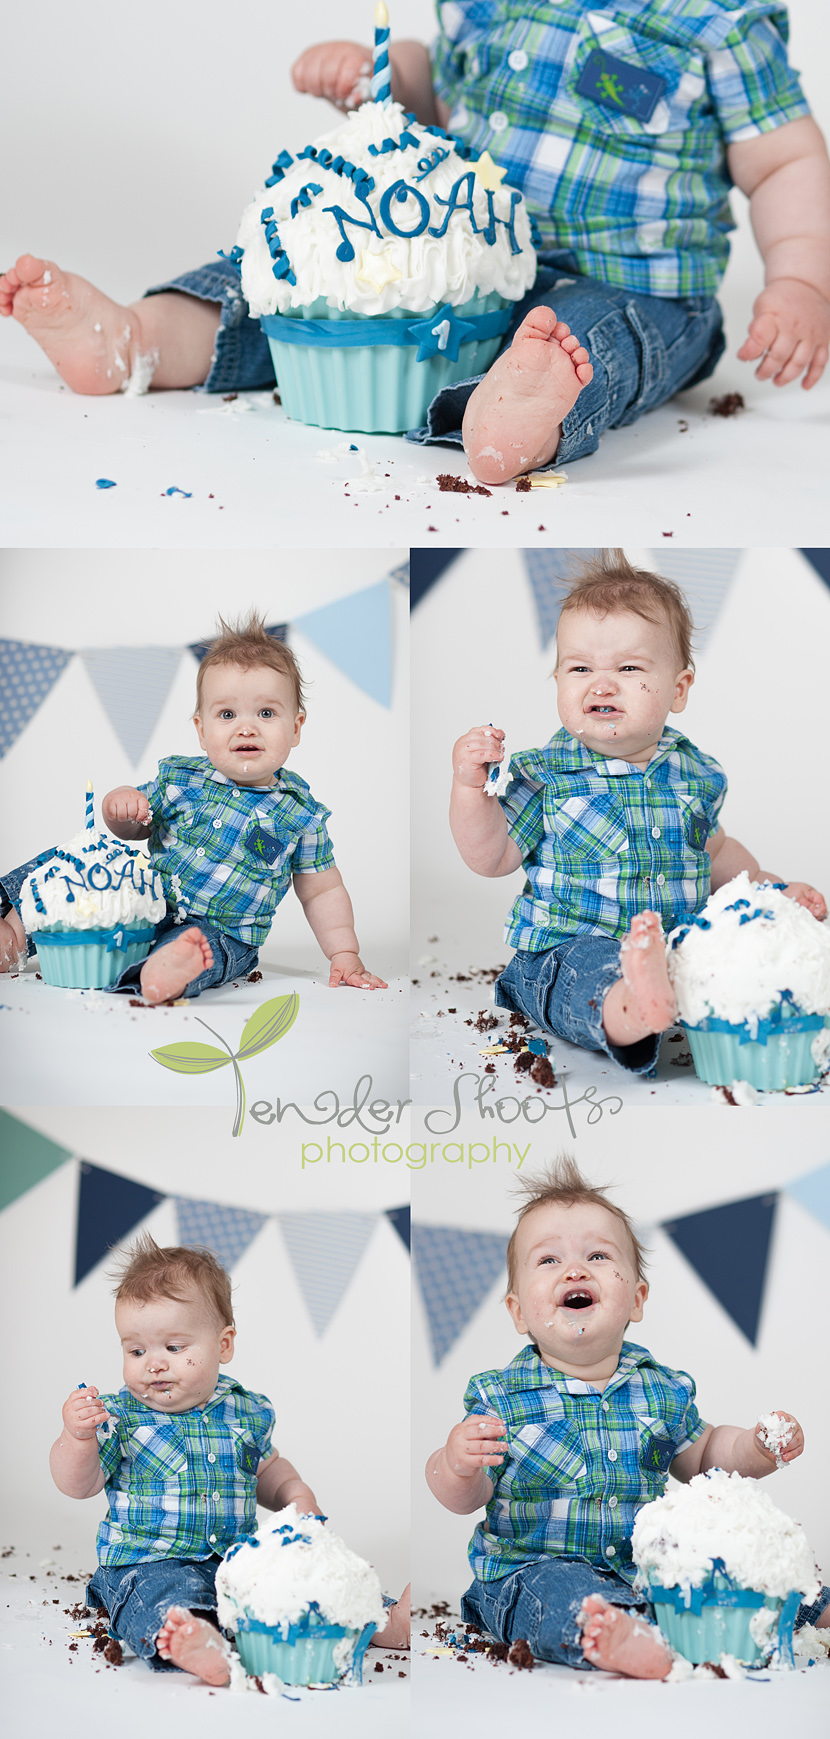 Cake smash by Tender Shoots Photography